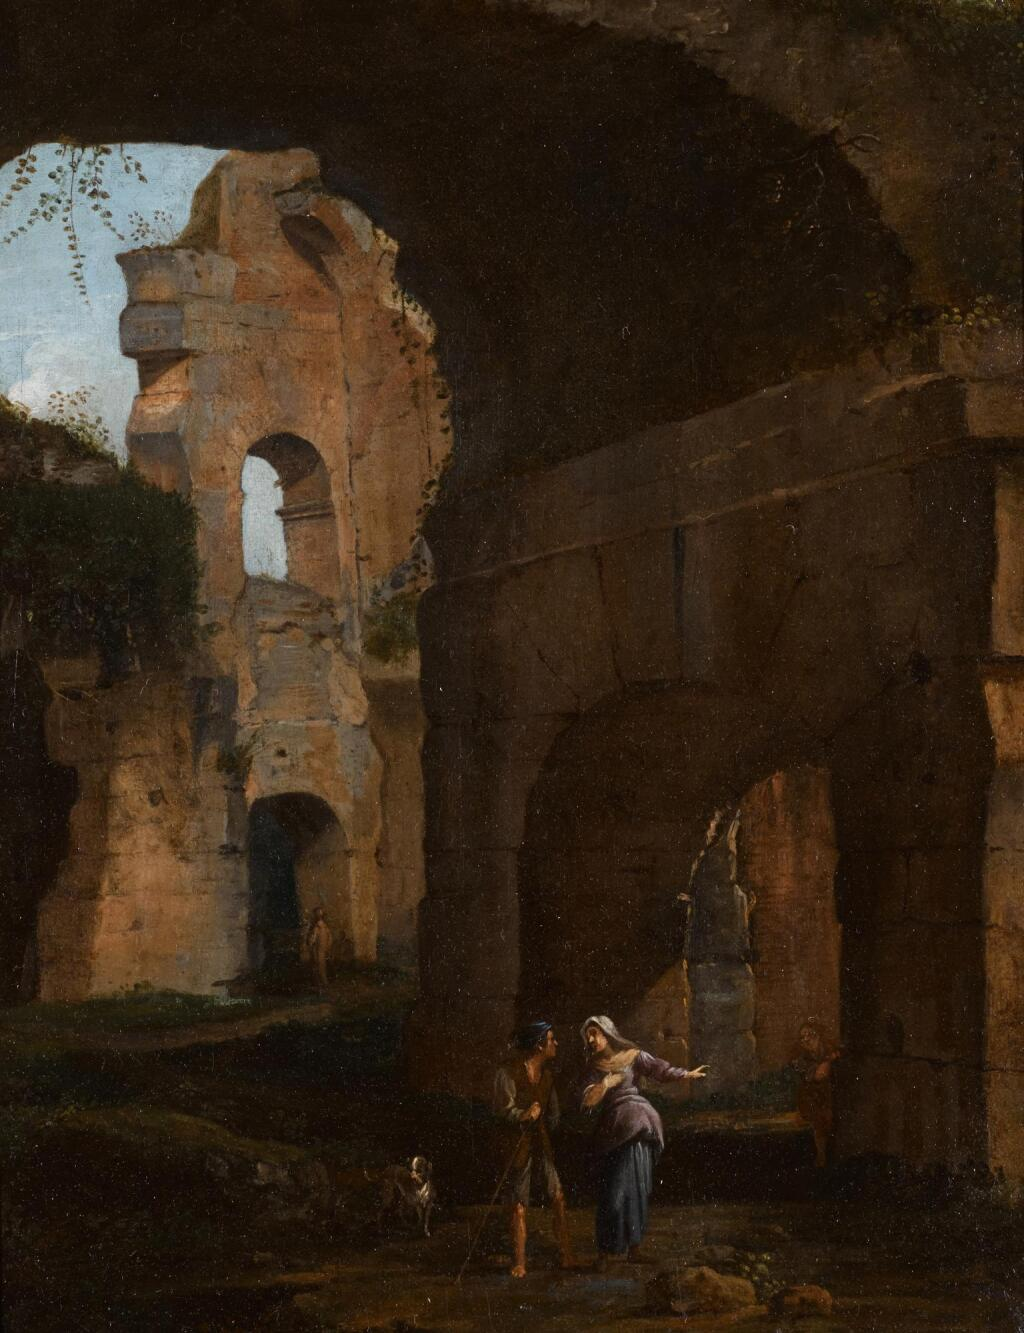 ROMAN SCHOOL, 17TH CENTURY | Classical ruins with figures conversing in the foreground